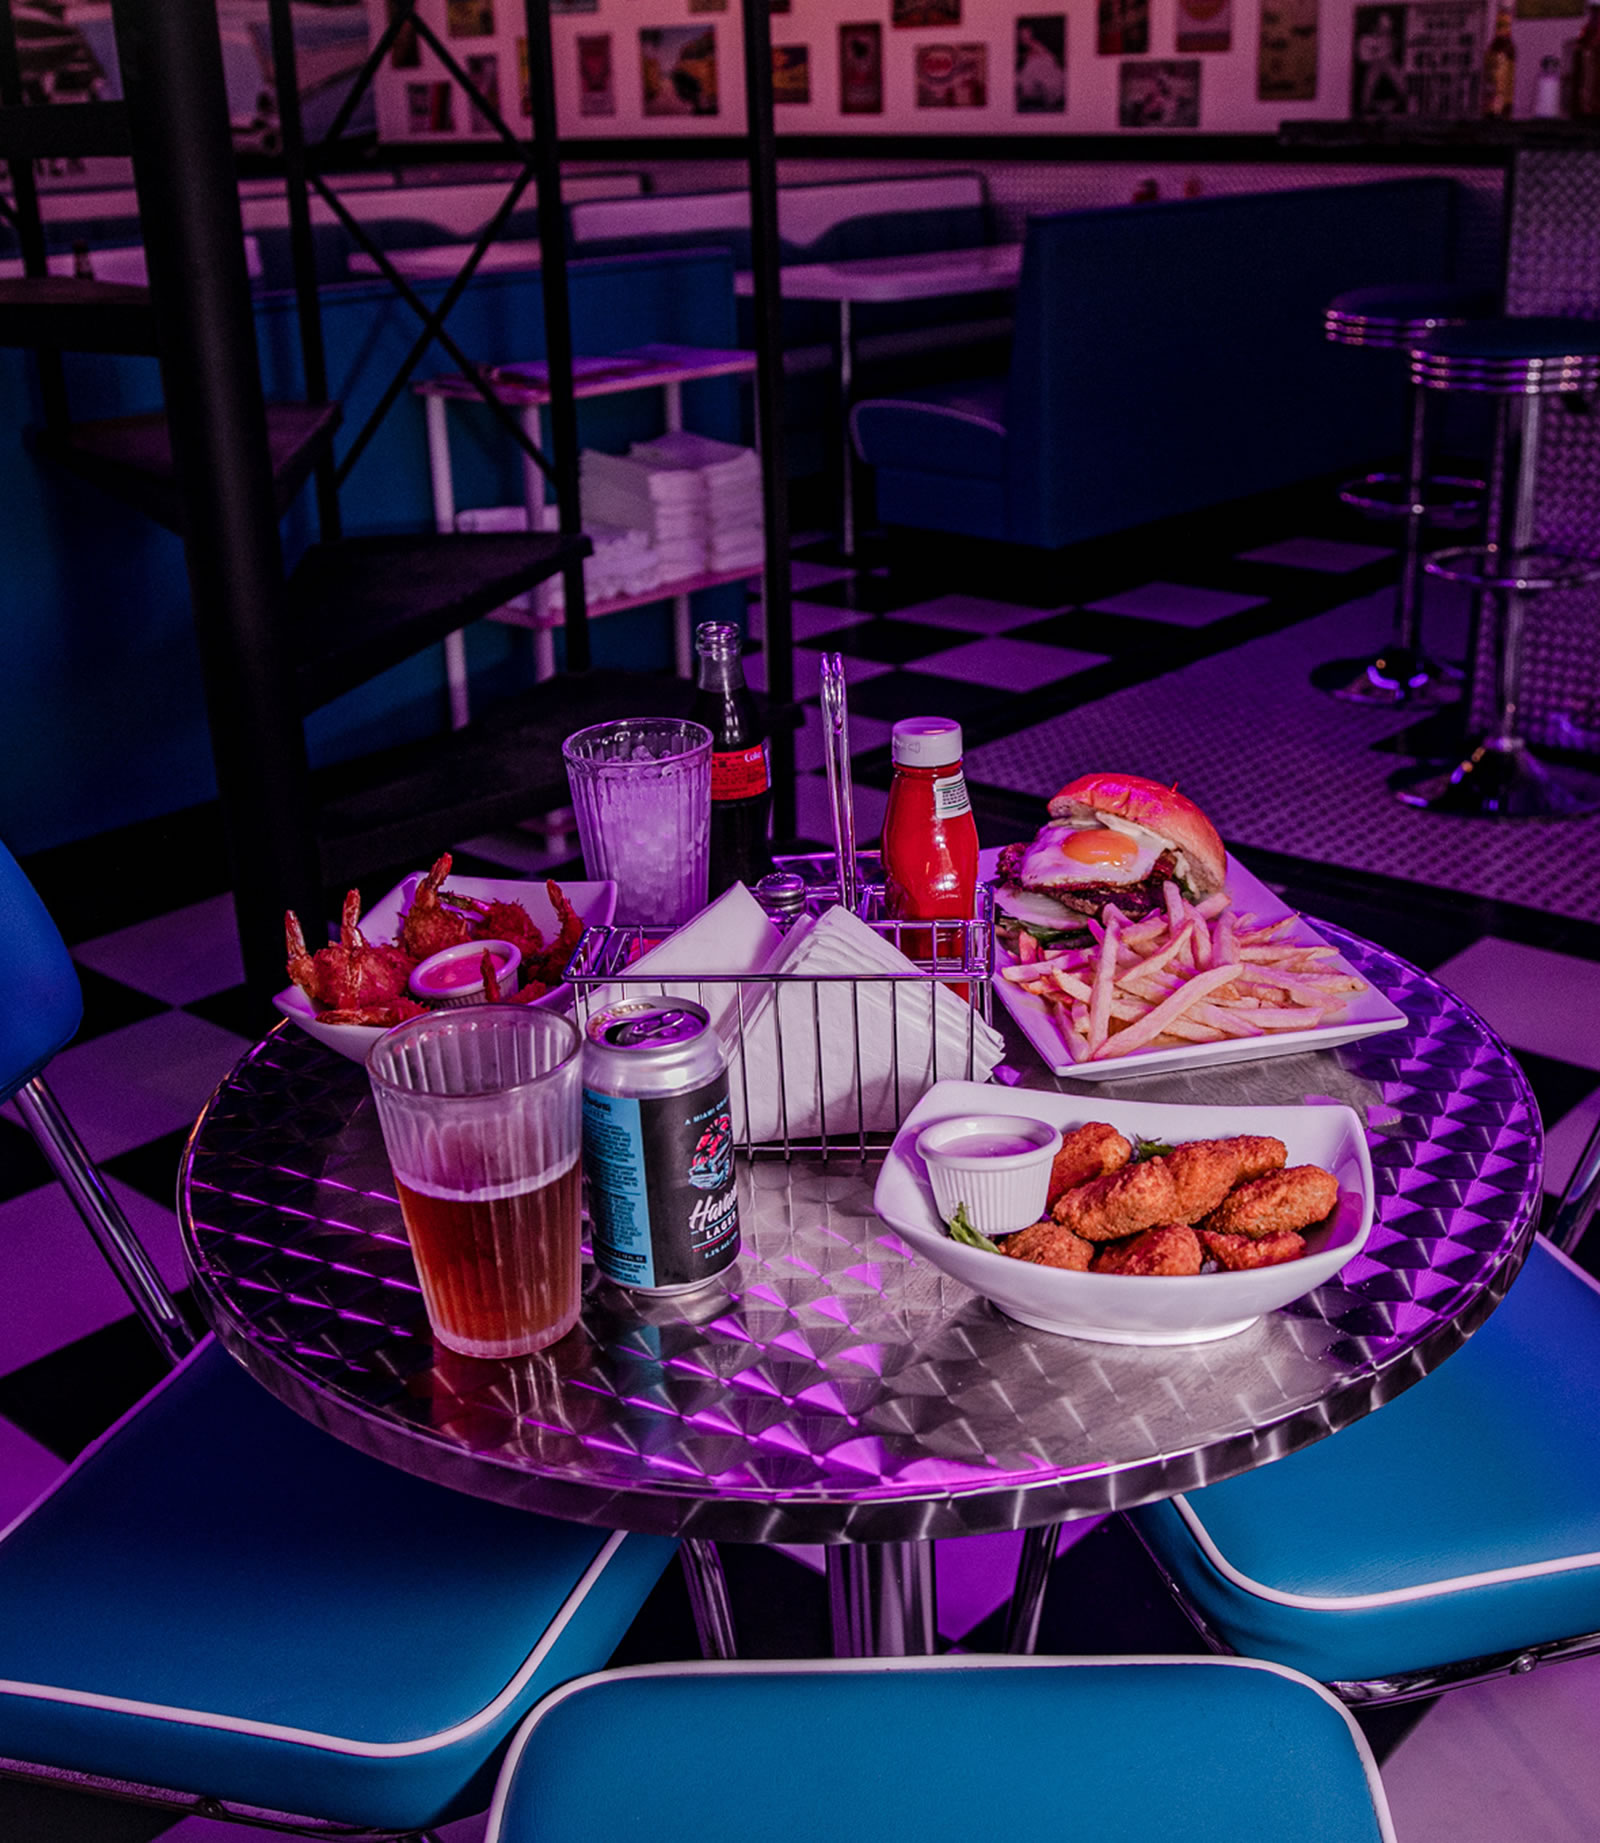 A table served with a dish of nuggets, one hamburger, fried shrimps and a beer.